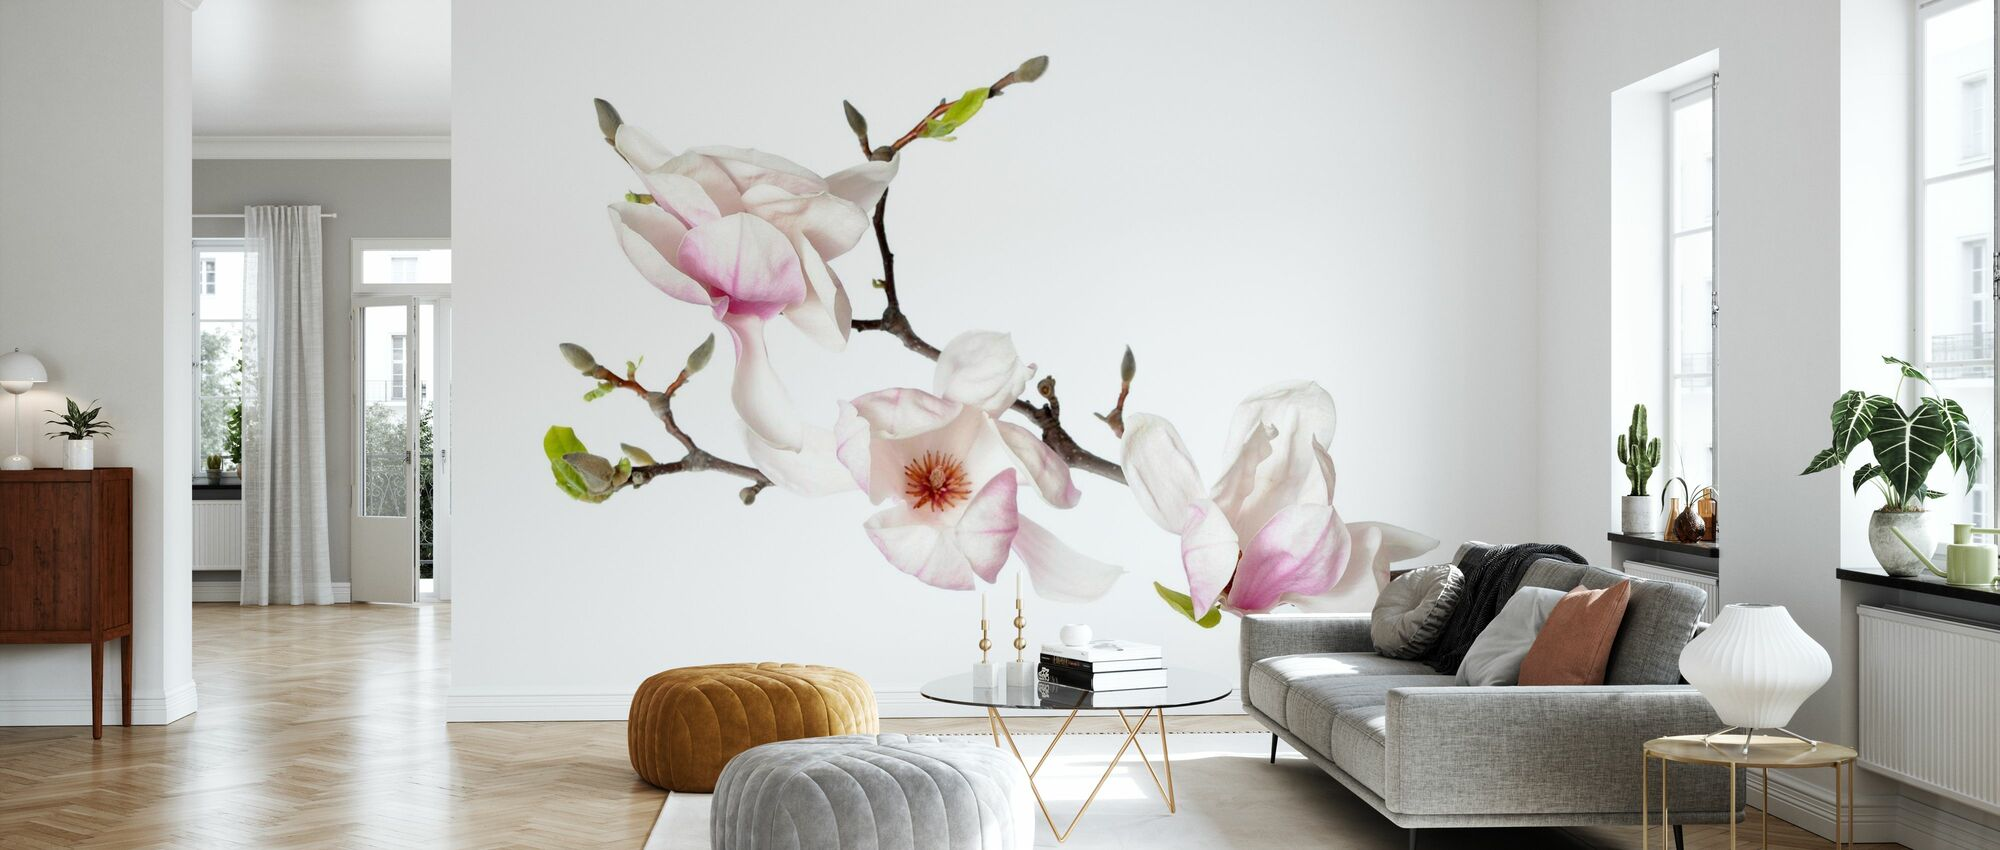 Orchid Buds - Wallpaper - Living Room